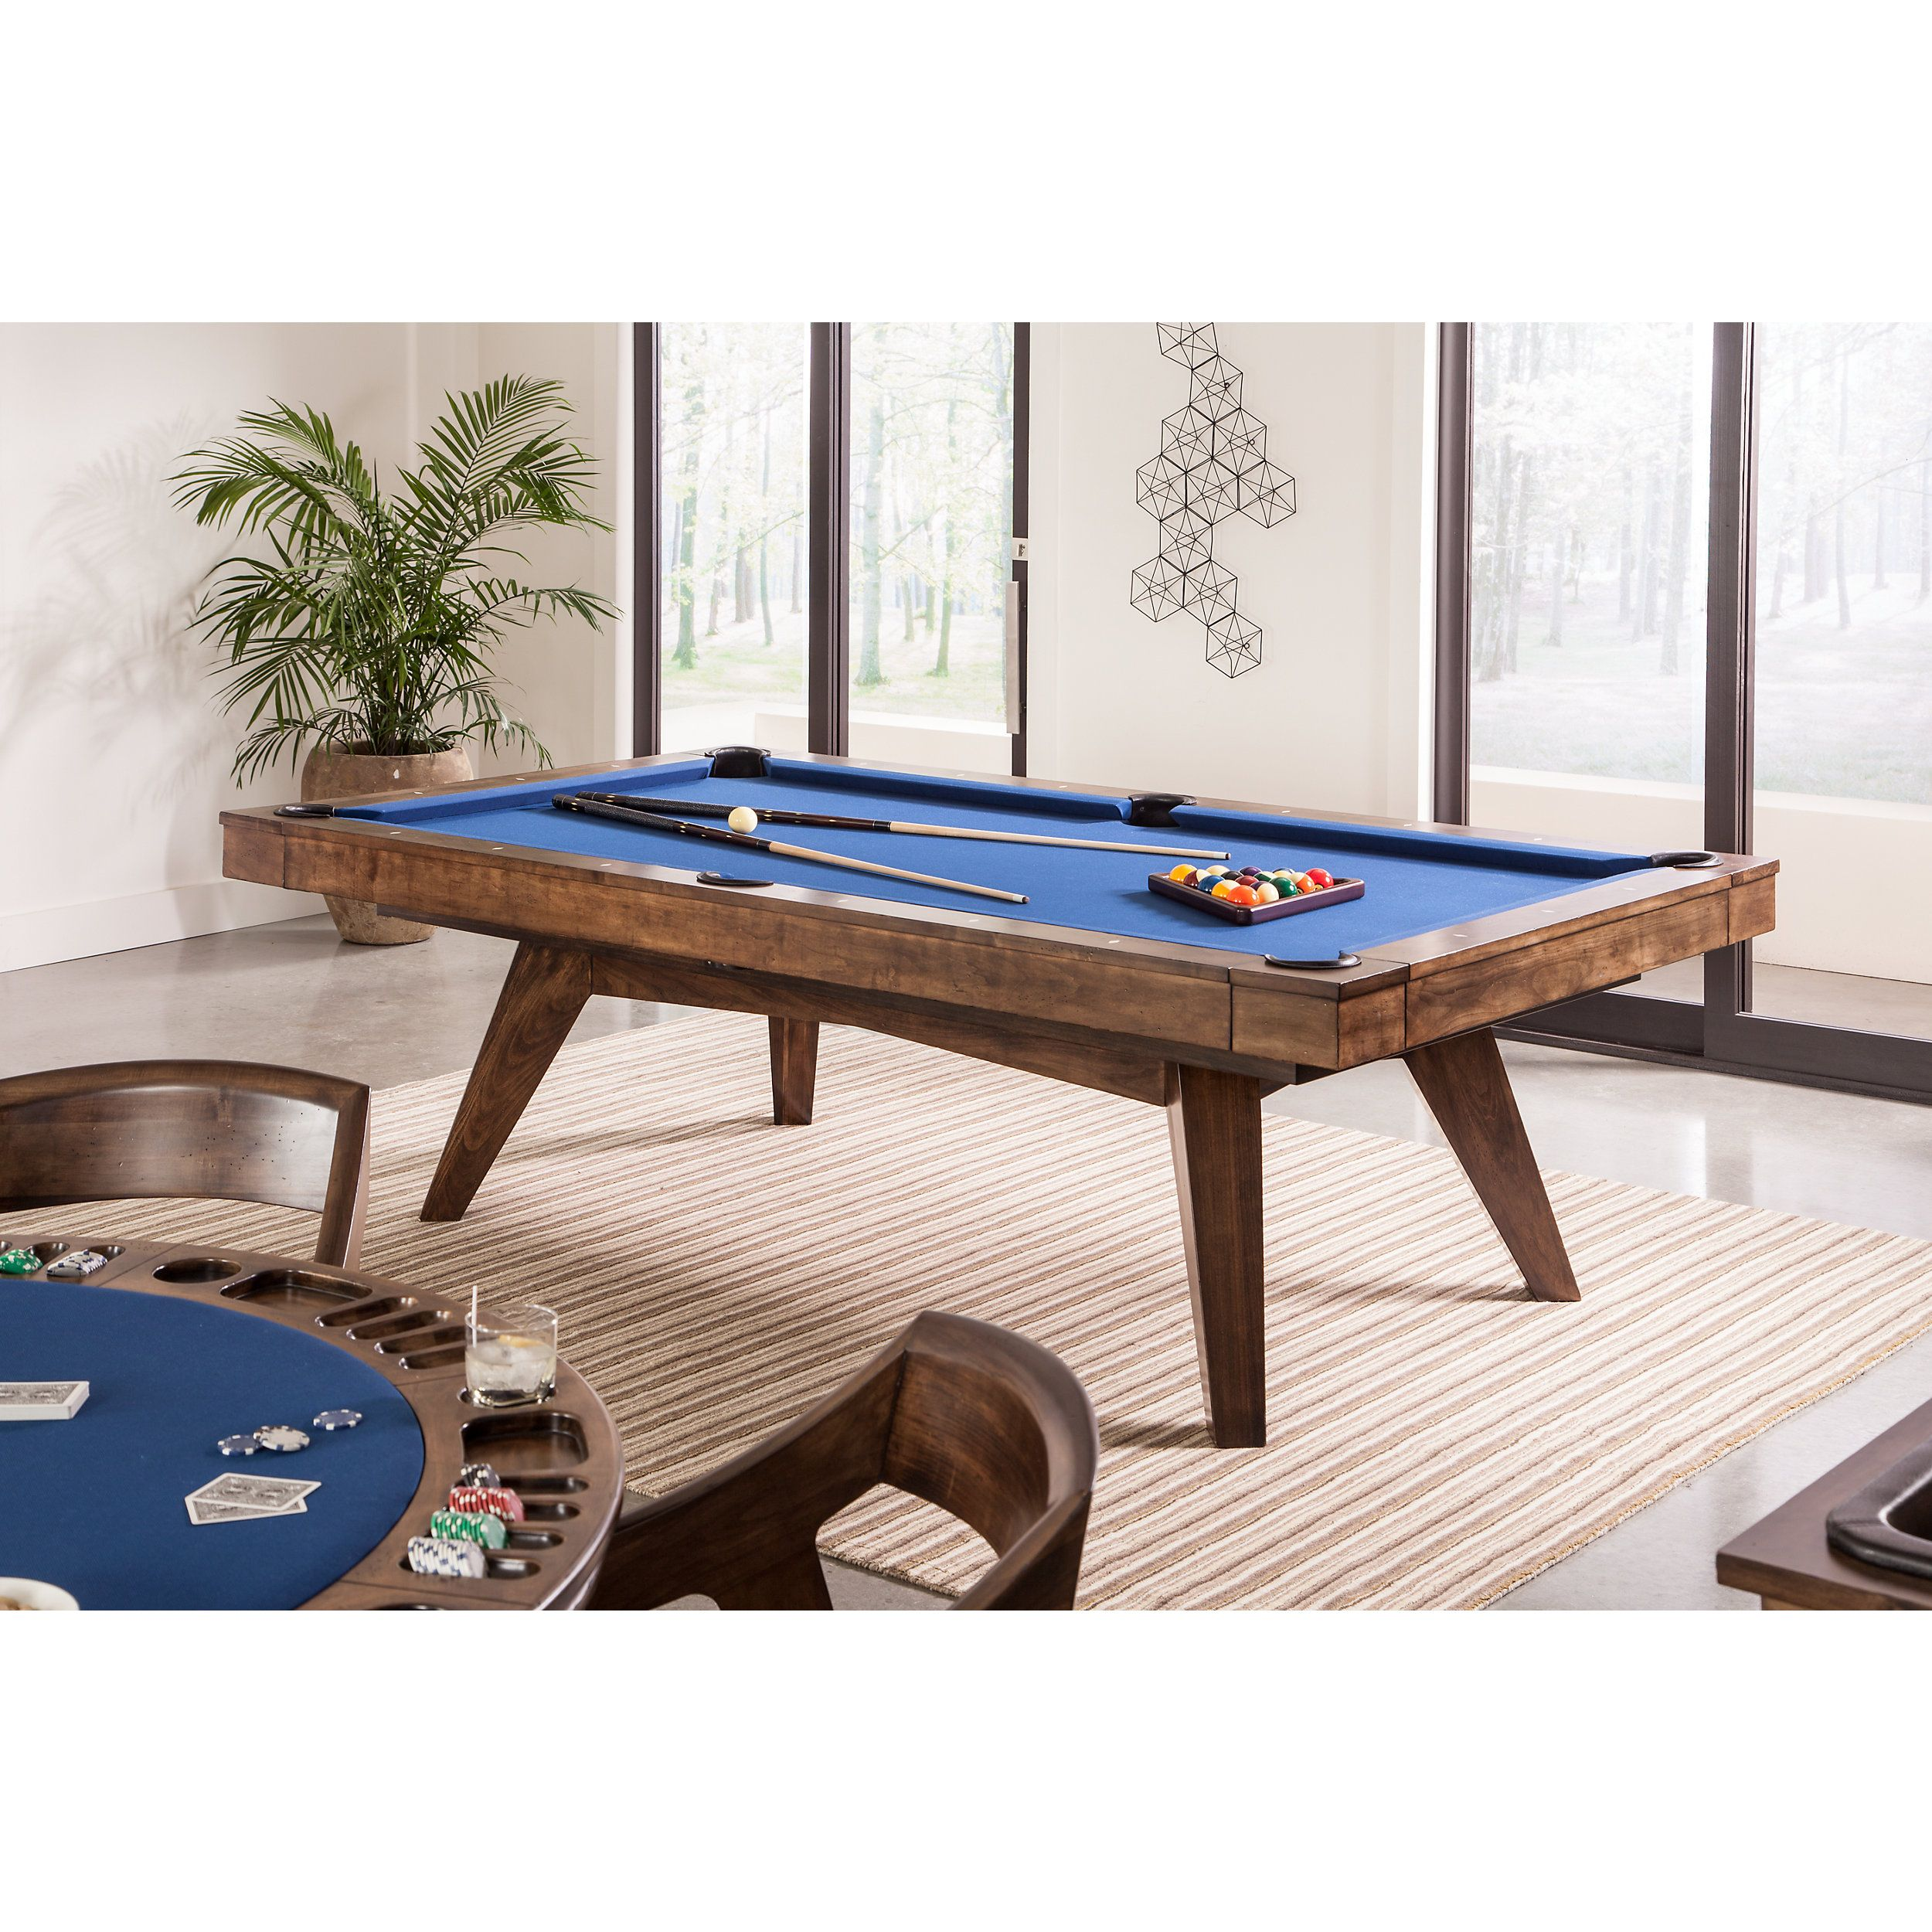 Cameron Pool Table Wood Pool Table Billiard Factory